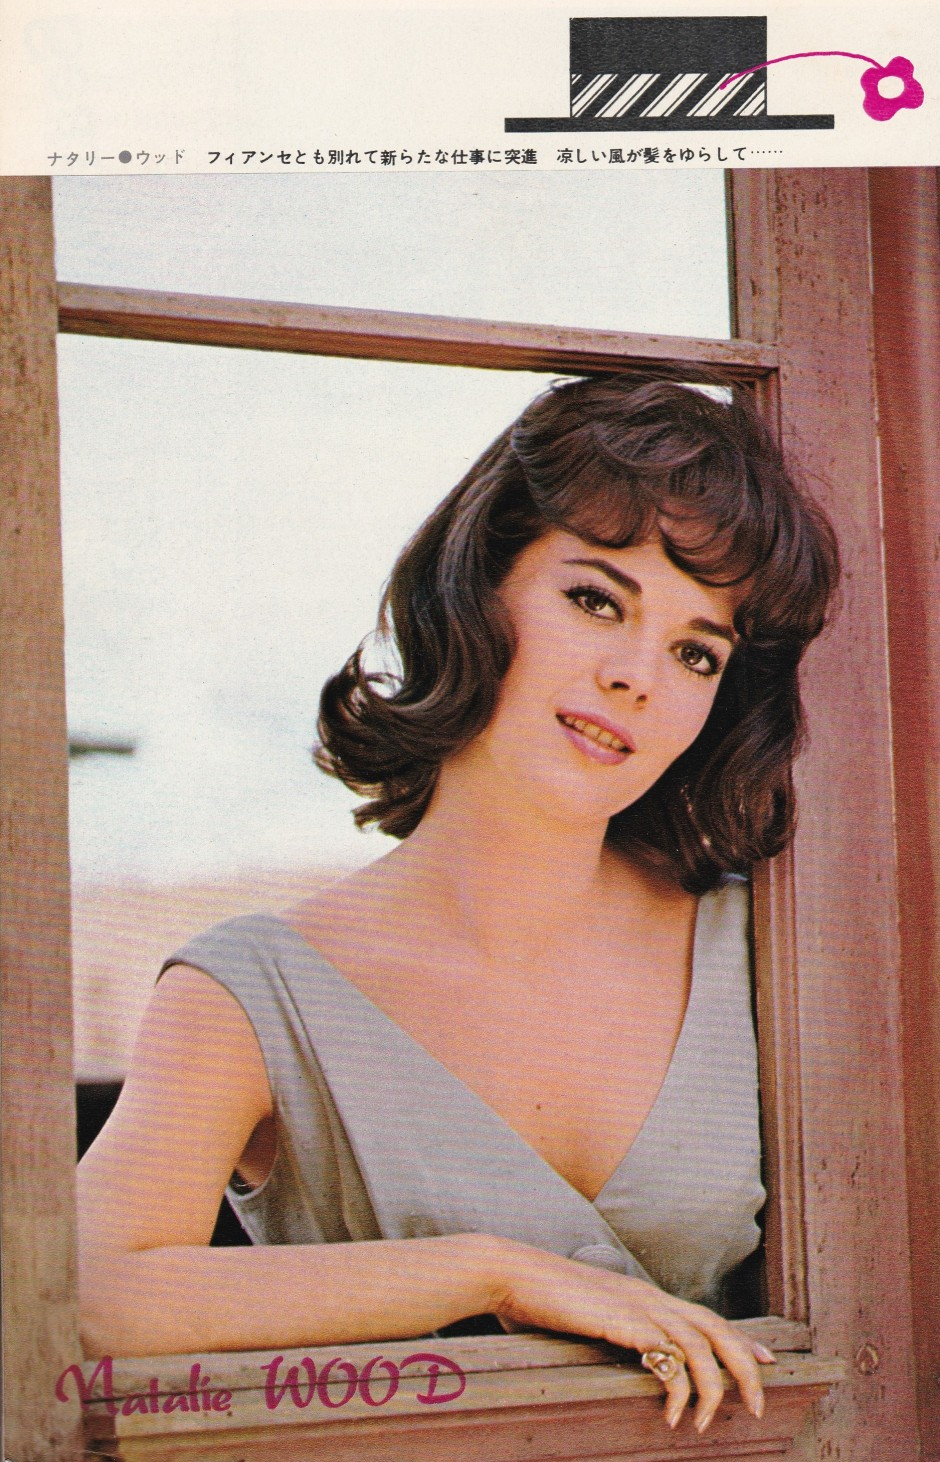 Eiga no Tomo_August 1964_Natalie Wood